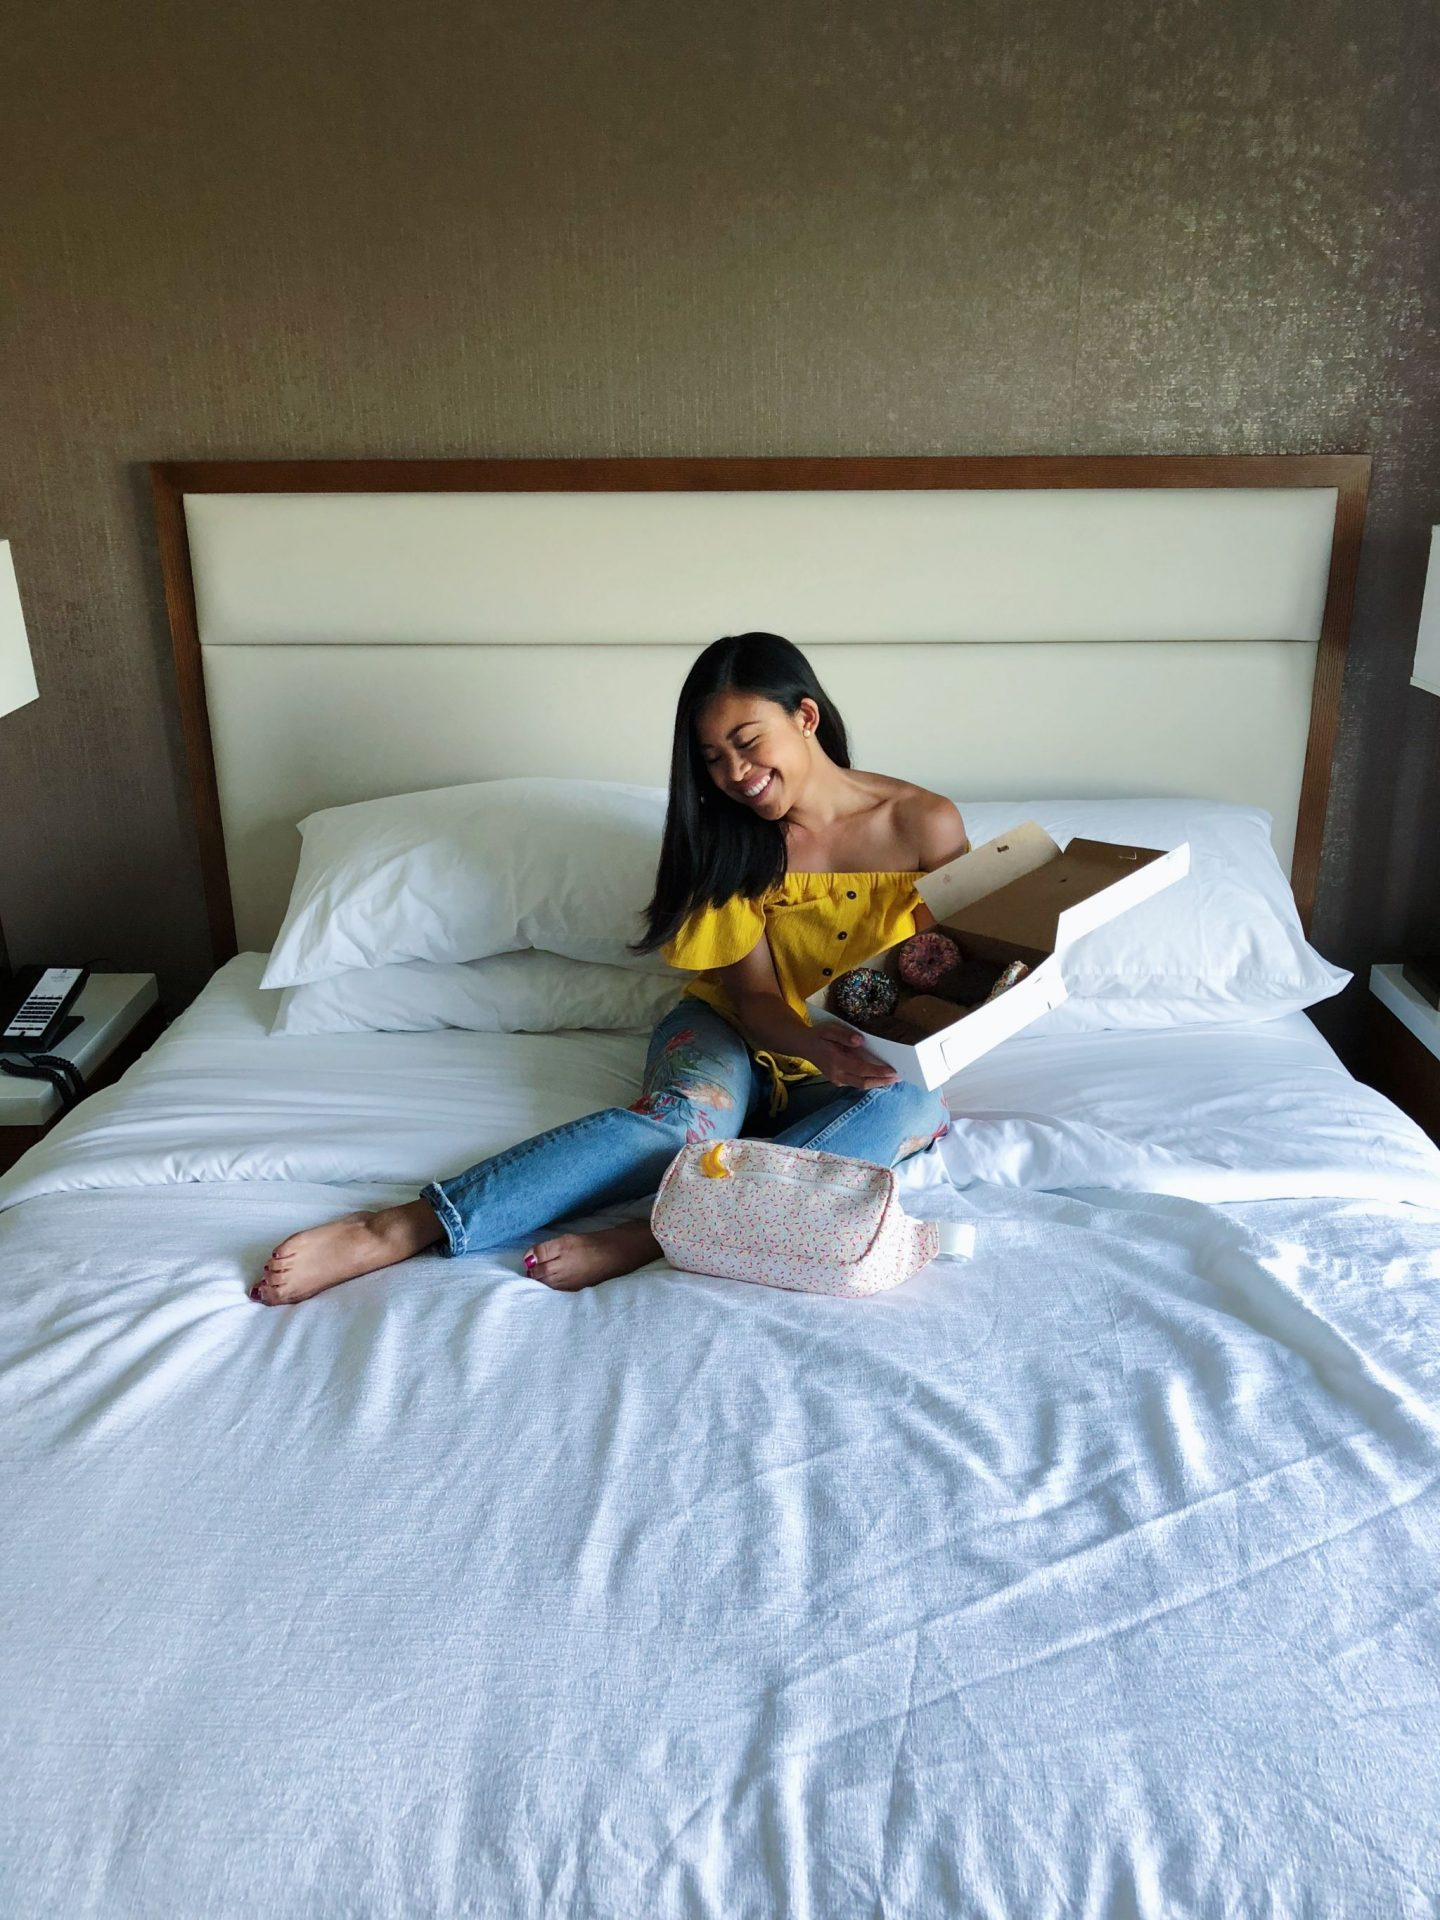 Staycation - 5 reasons to take a staycation – why staycation – why take a staycation – benefits of a staycation – vacation or staycation – embassy suites by Hilton – Hilton hotels – Lynnwood Washington – Lynnwood hotels